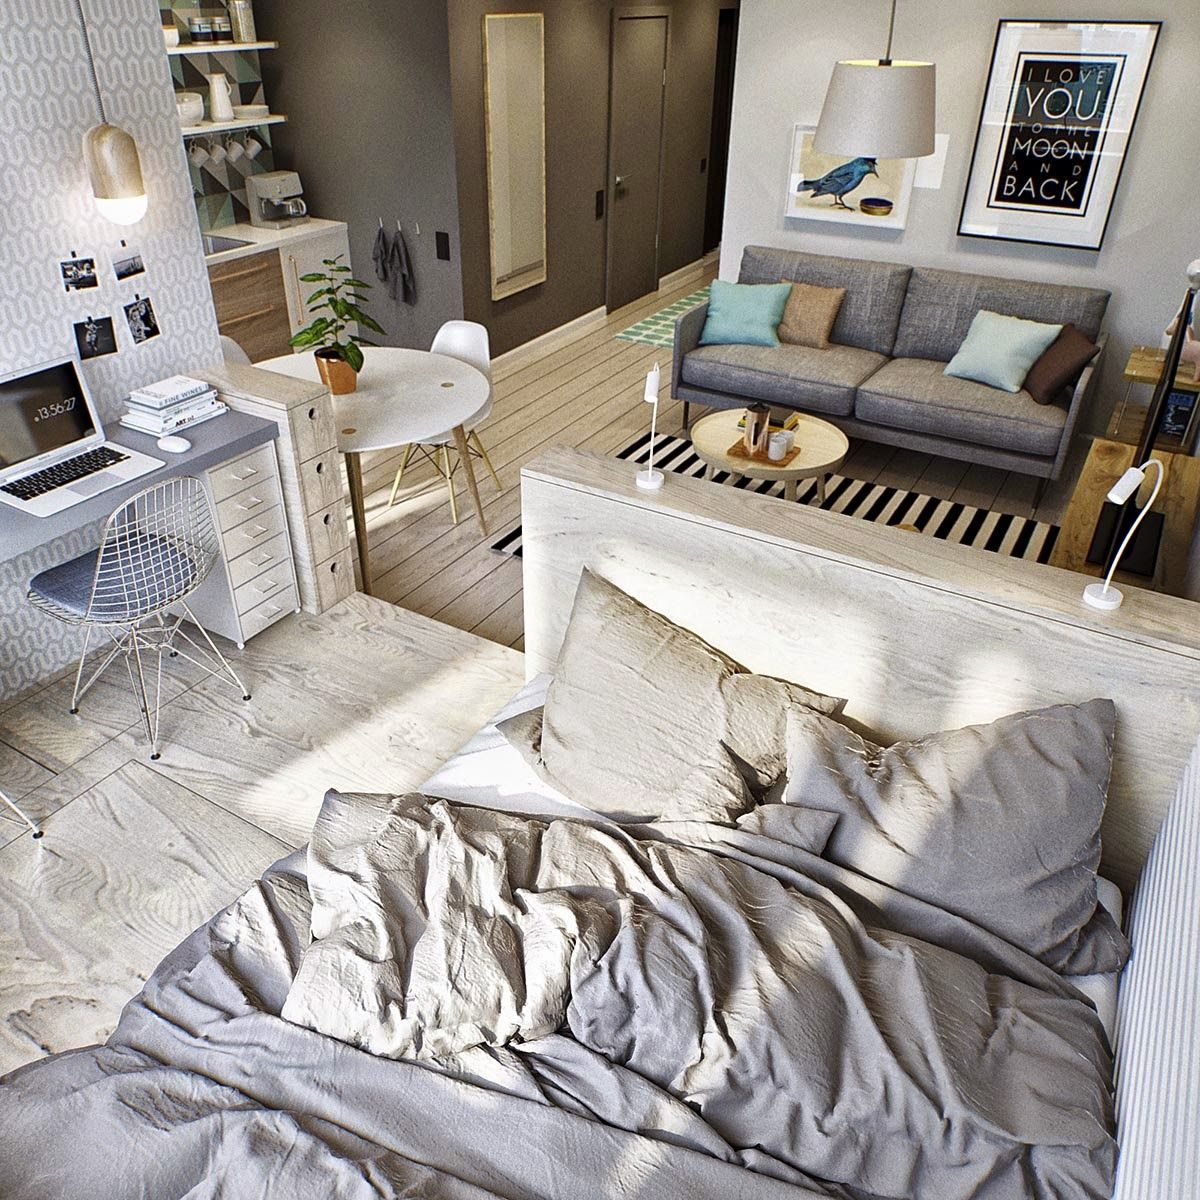 Dreamy and functional square maters apartment daily dream decor